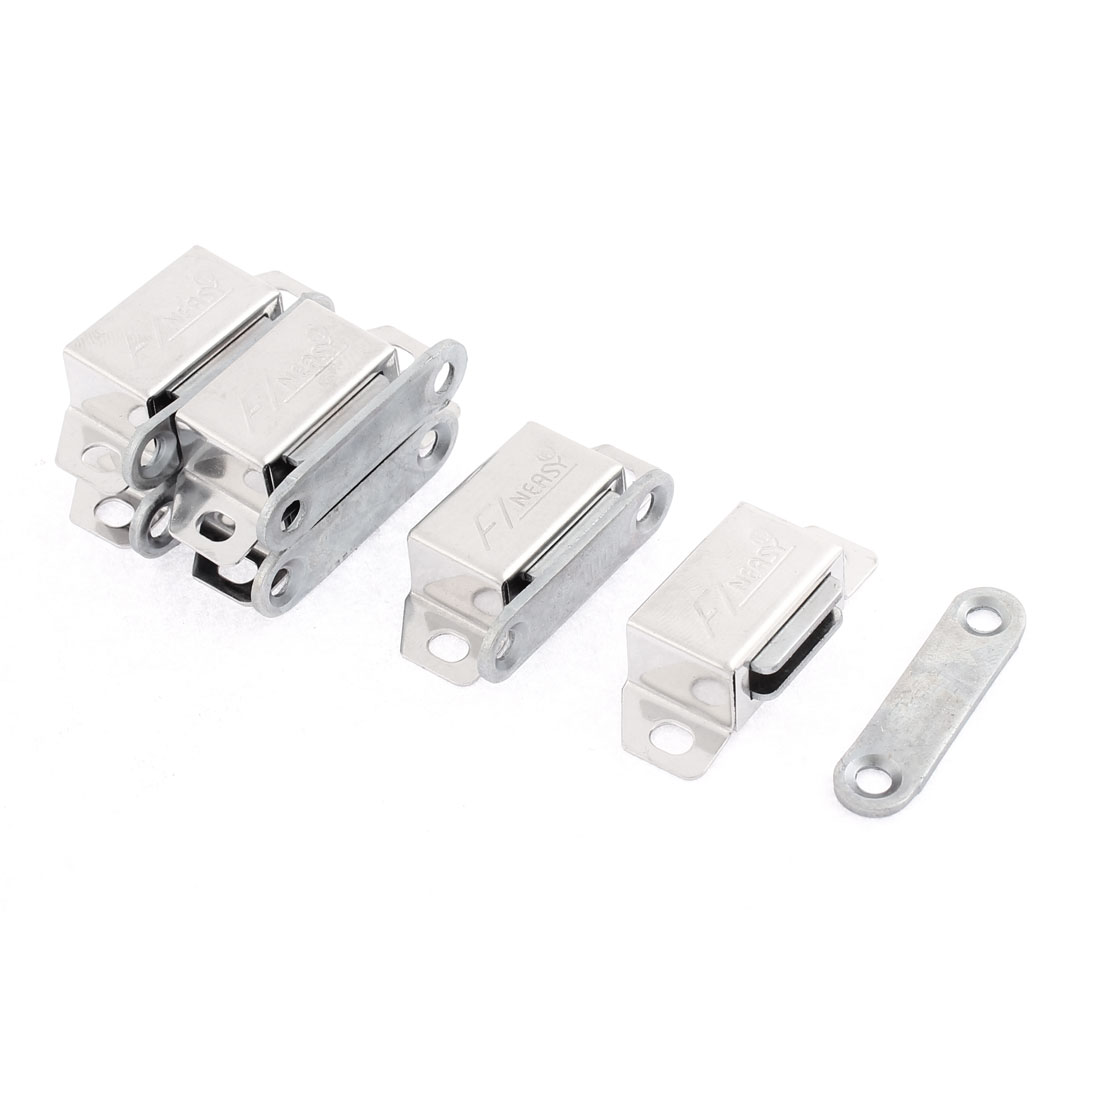 Cabinet Door Stainless Steel Magnetic Catch Stopper Latch 36mm Length 6pcs